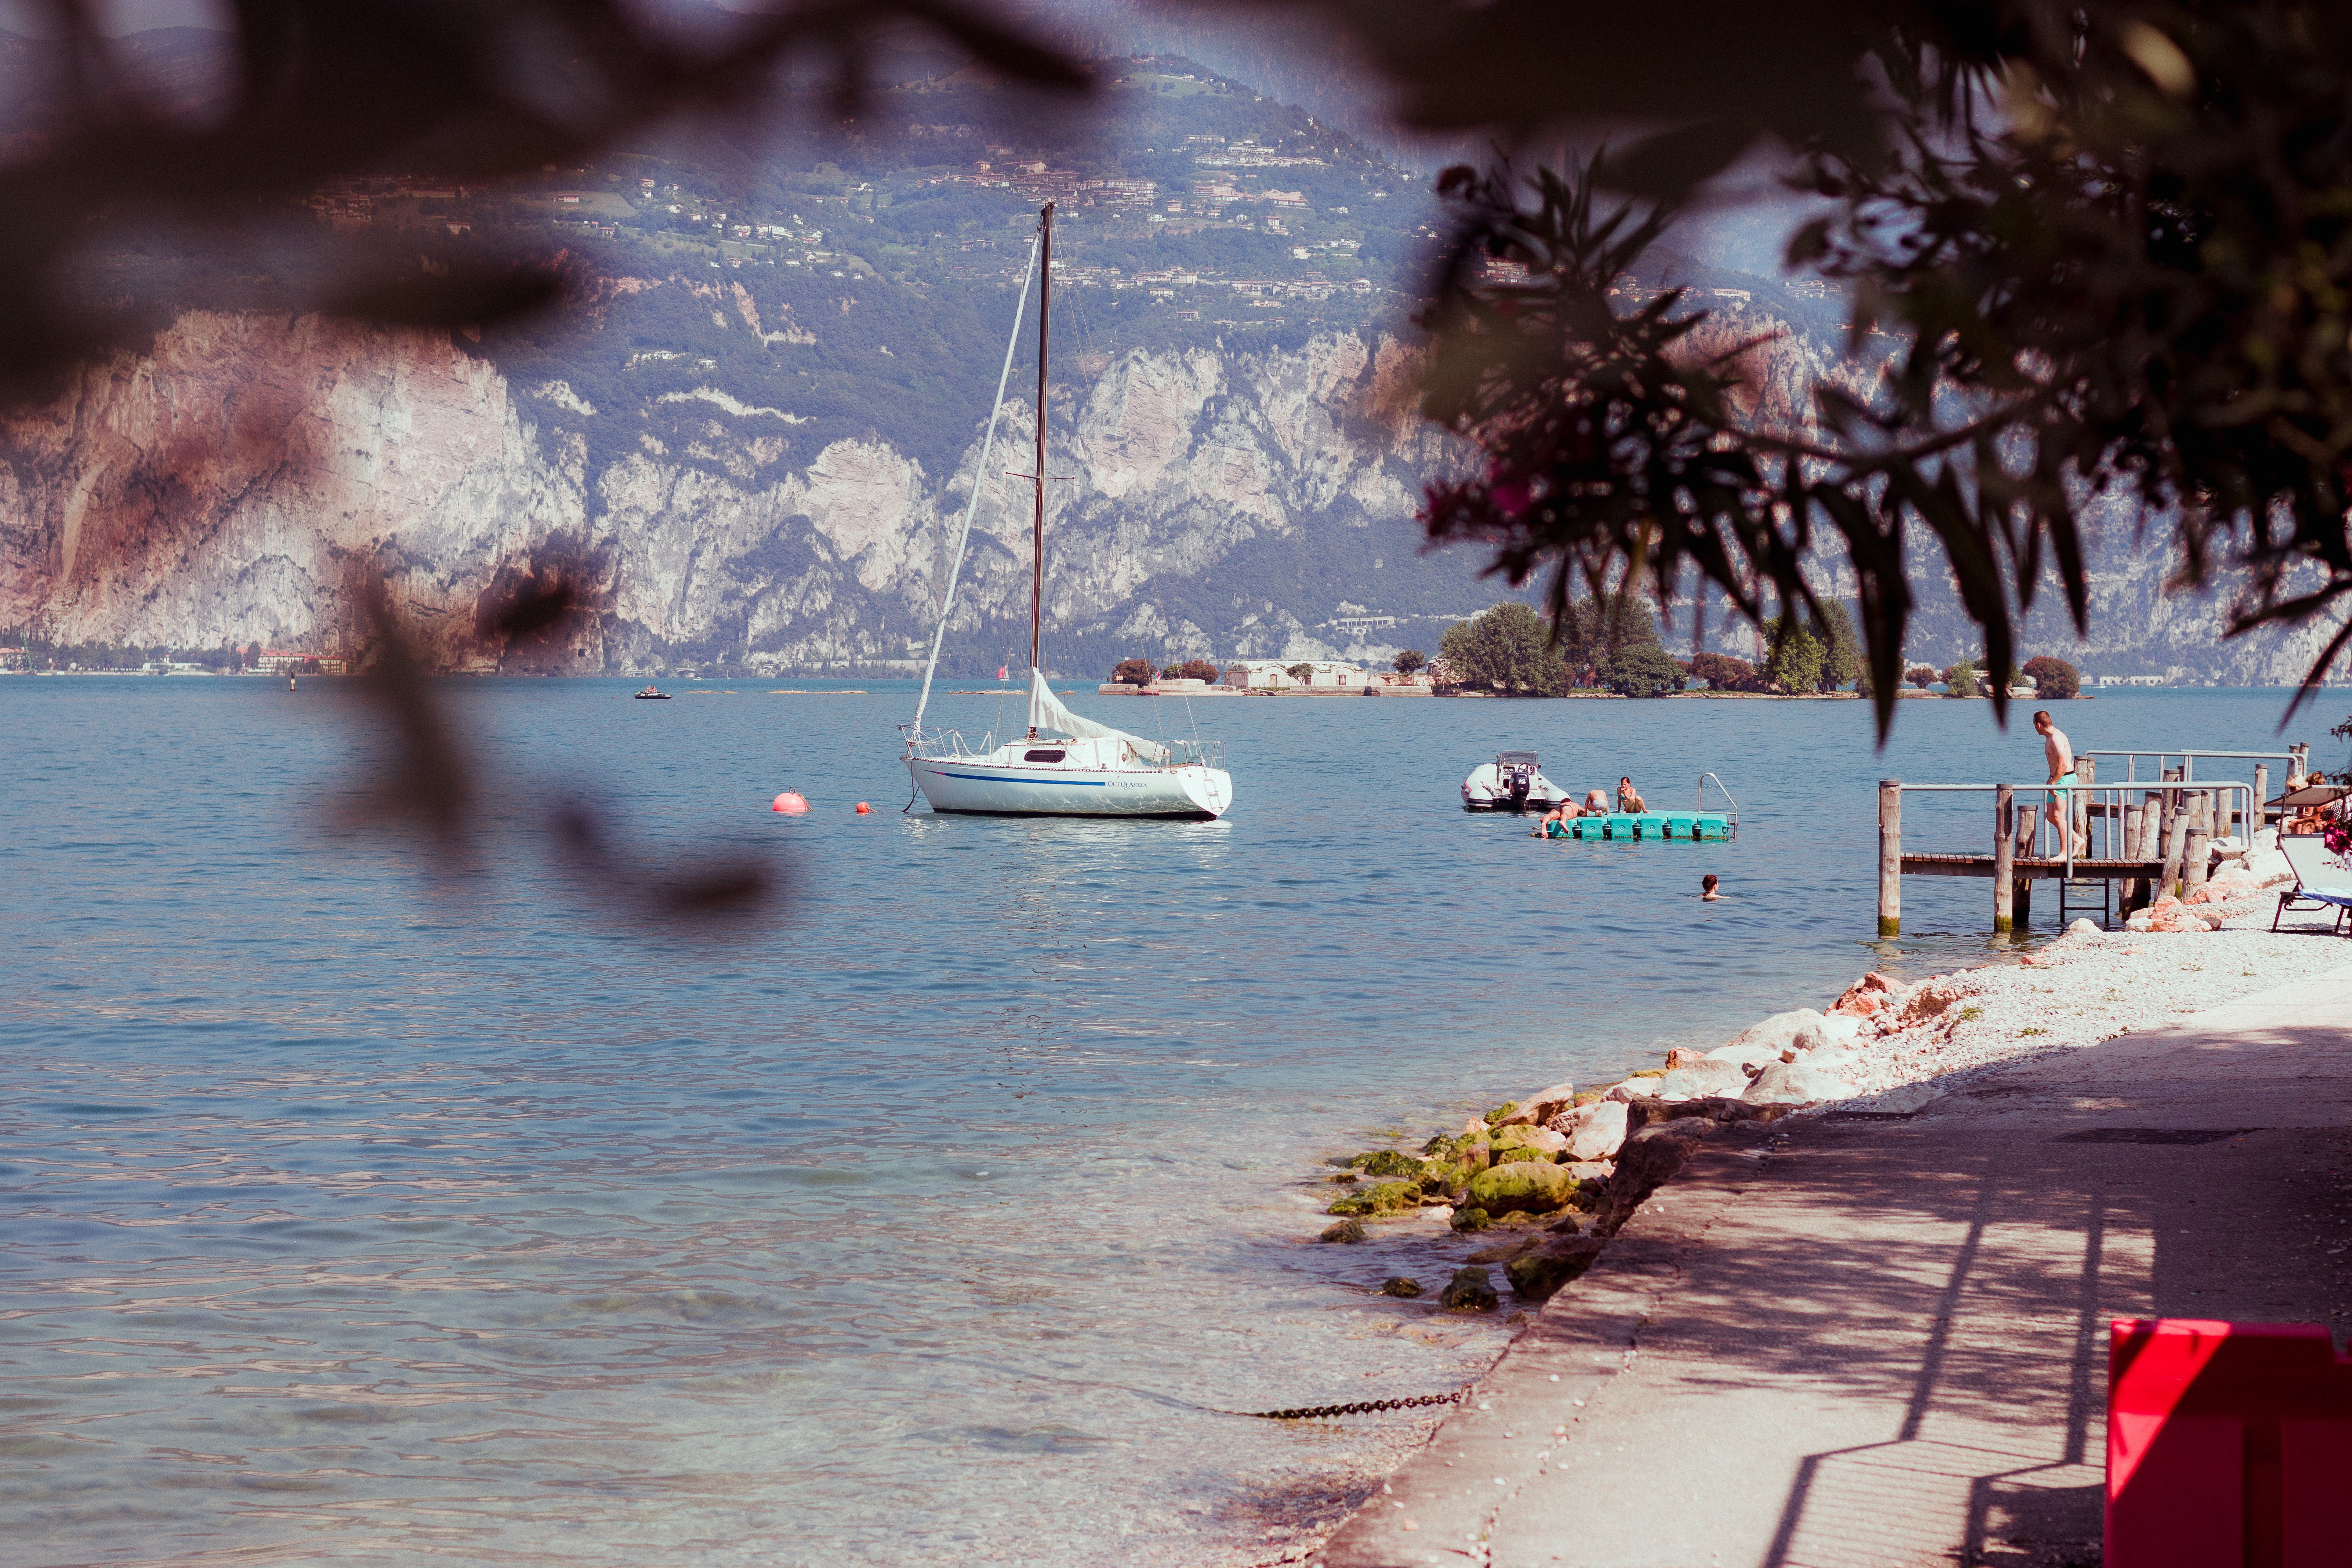 White Sail Boat on the Water